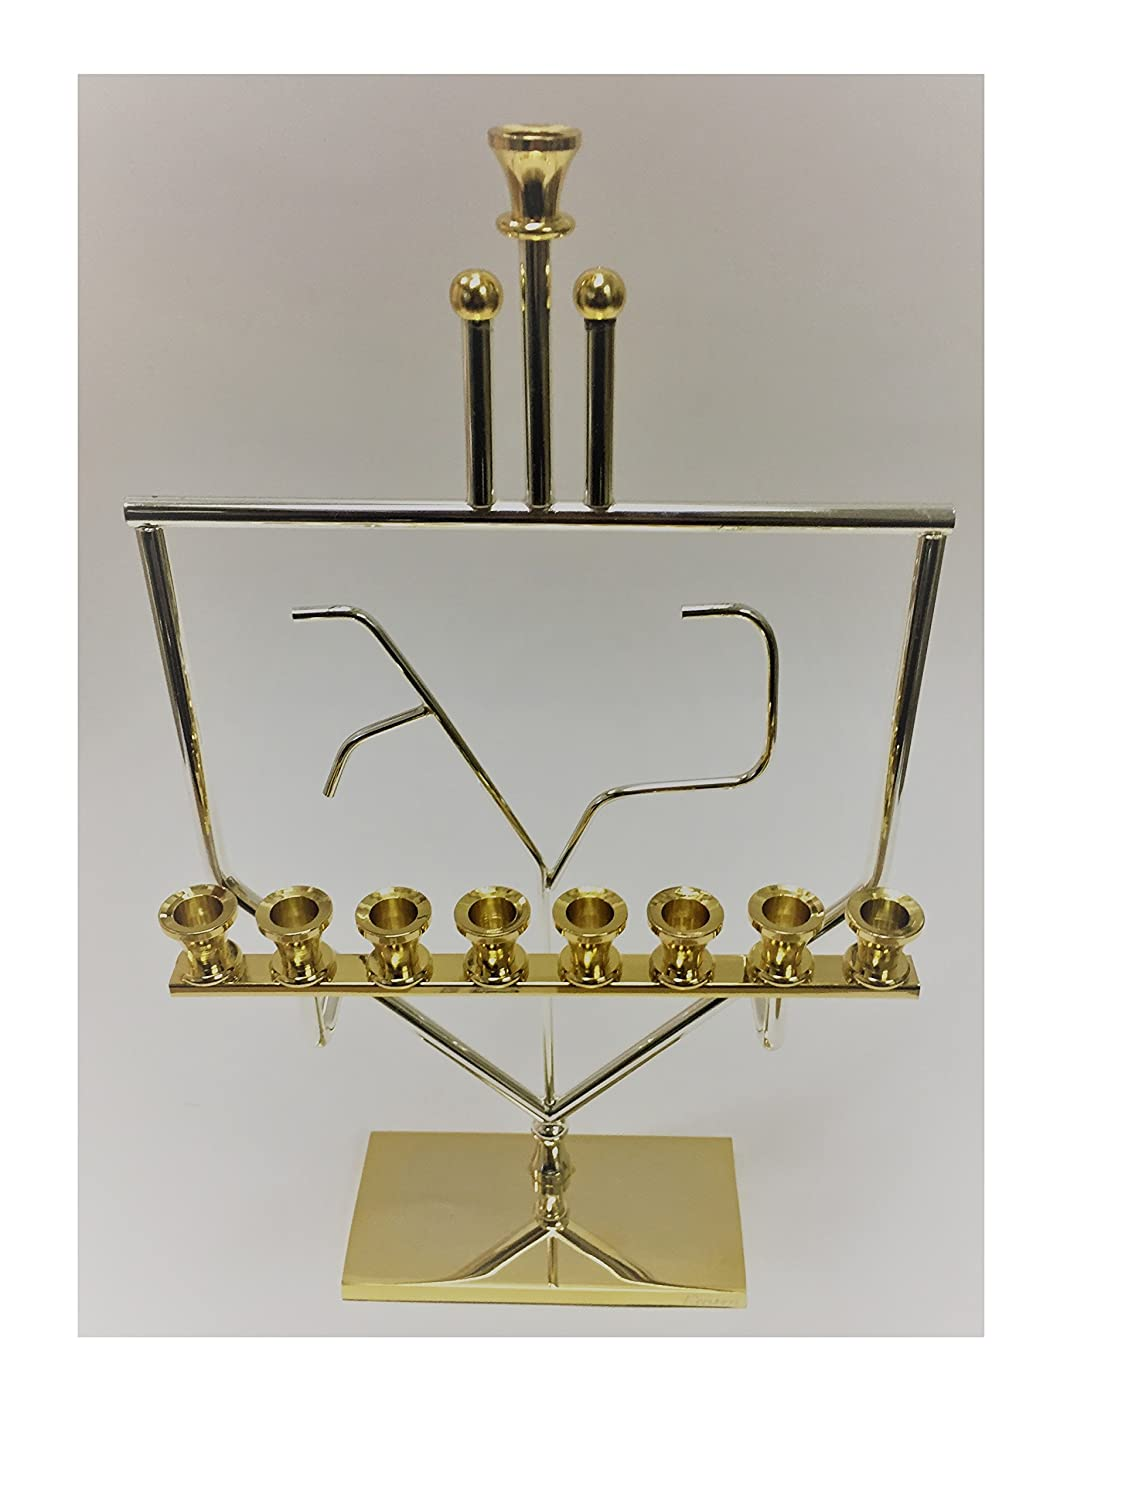 Alef Judaica Silver and Gold Colored Menorah - Nun Gimmel Dreidel Design M195